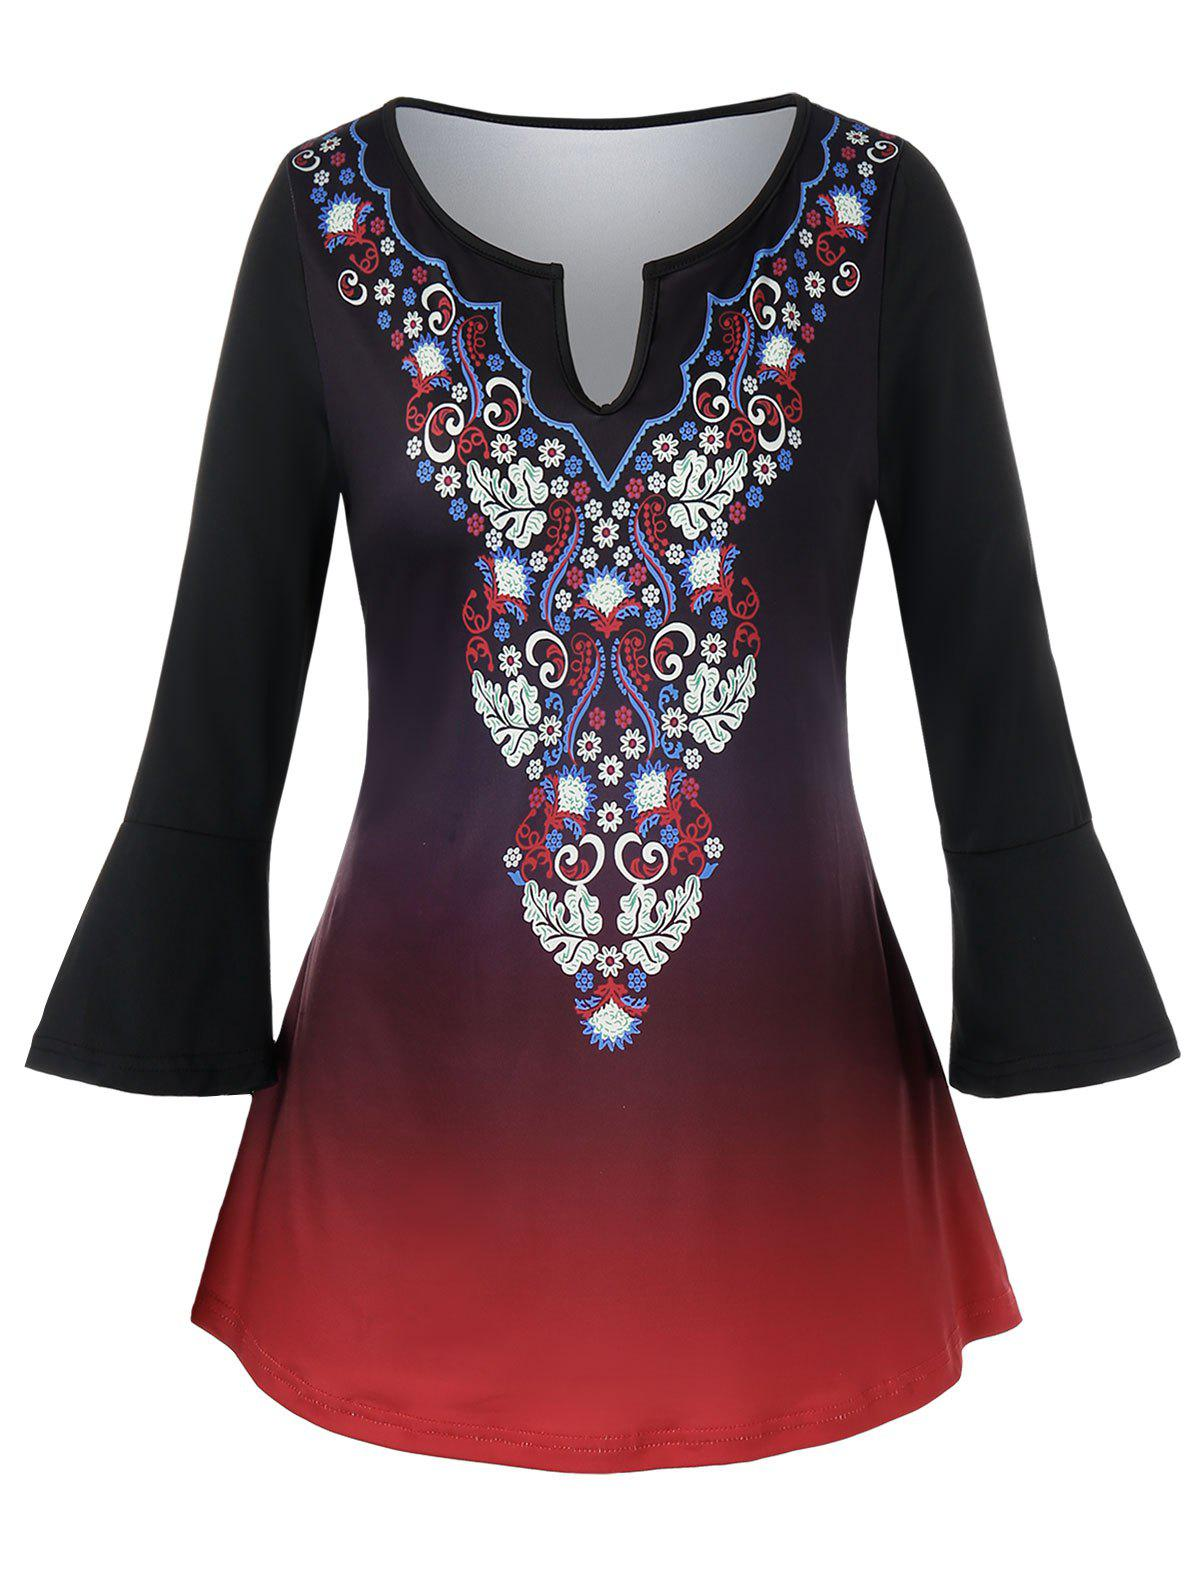 Plus Size Ethnic Floral Printed Ombre Top - BLACK 3X